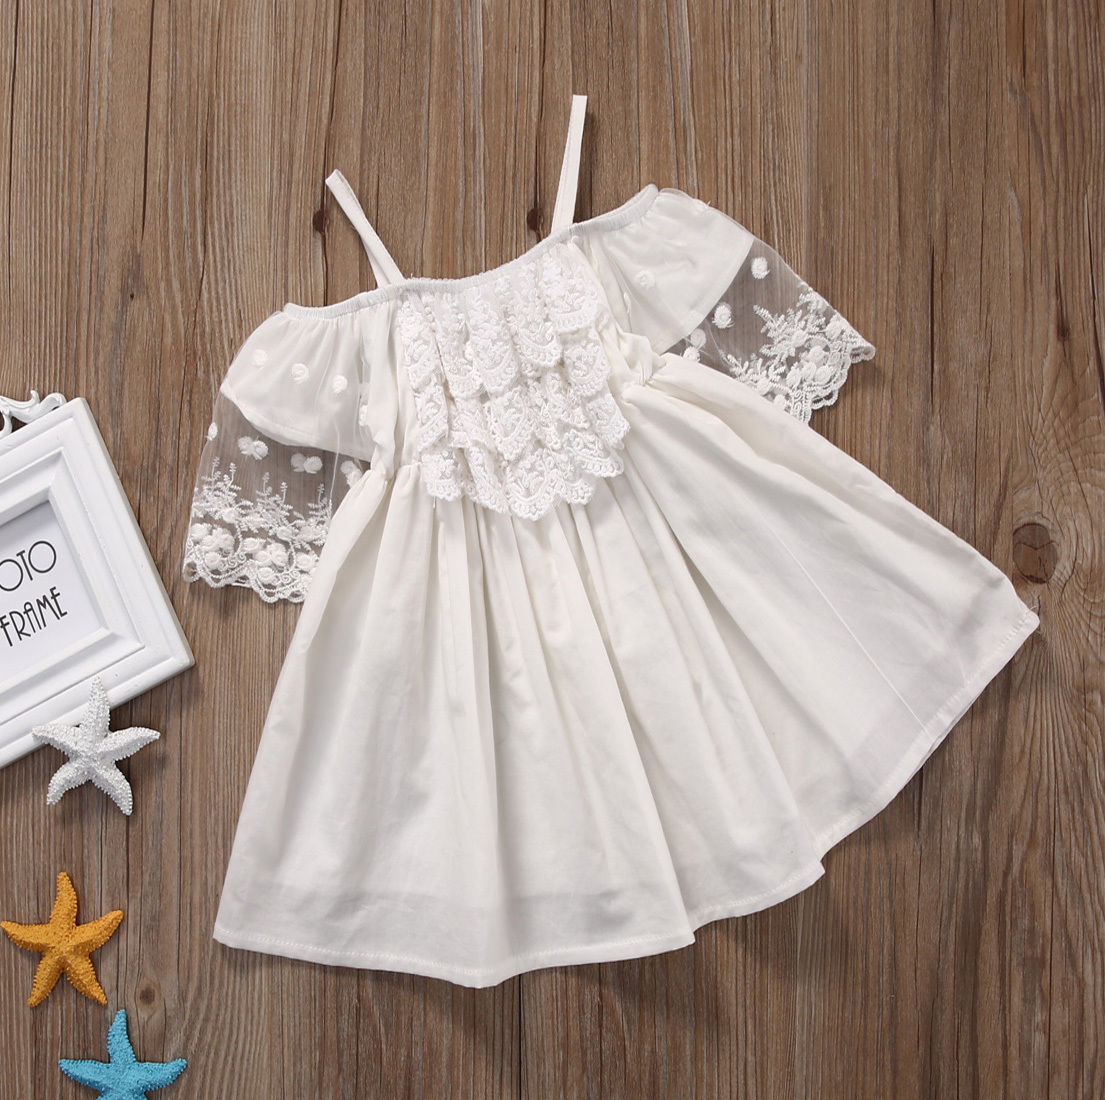 a9444efdb Lace Girl Clothing Princess Dress Kid Baby Party Wedding Pageant Formal Mini  Cute White Dresses Clothes Baby Girls-in Dresses from Mother & Kids on ...